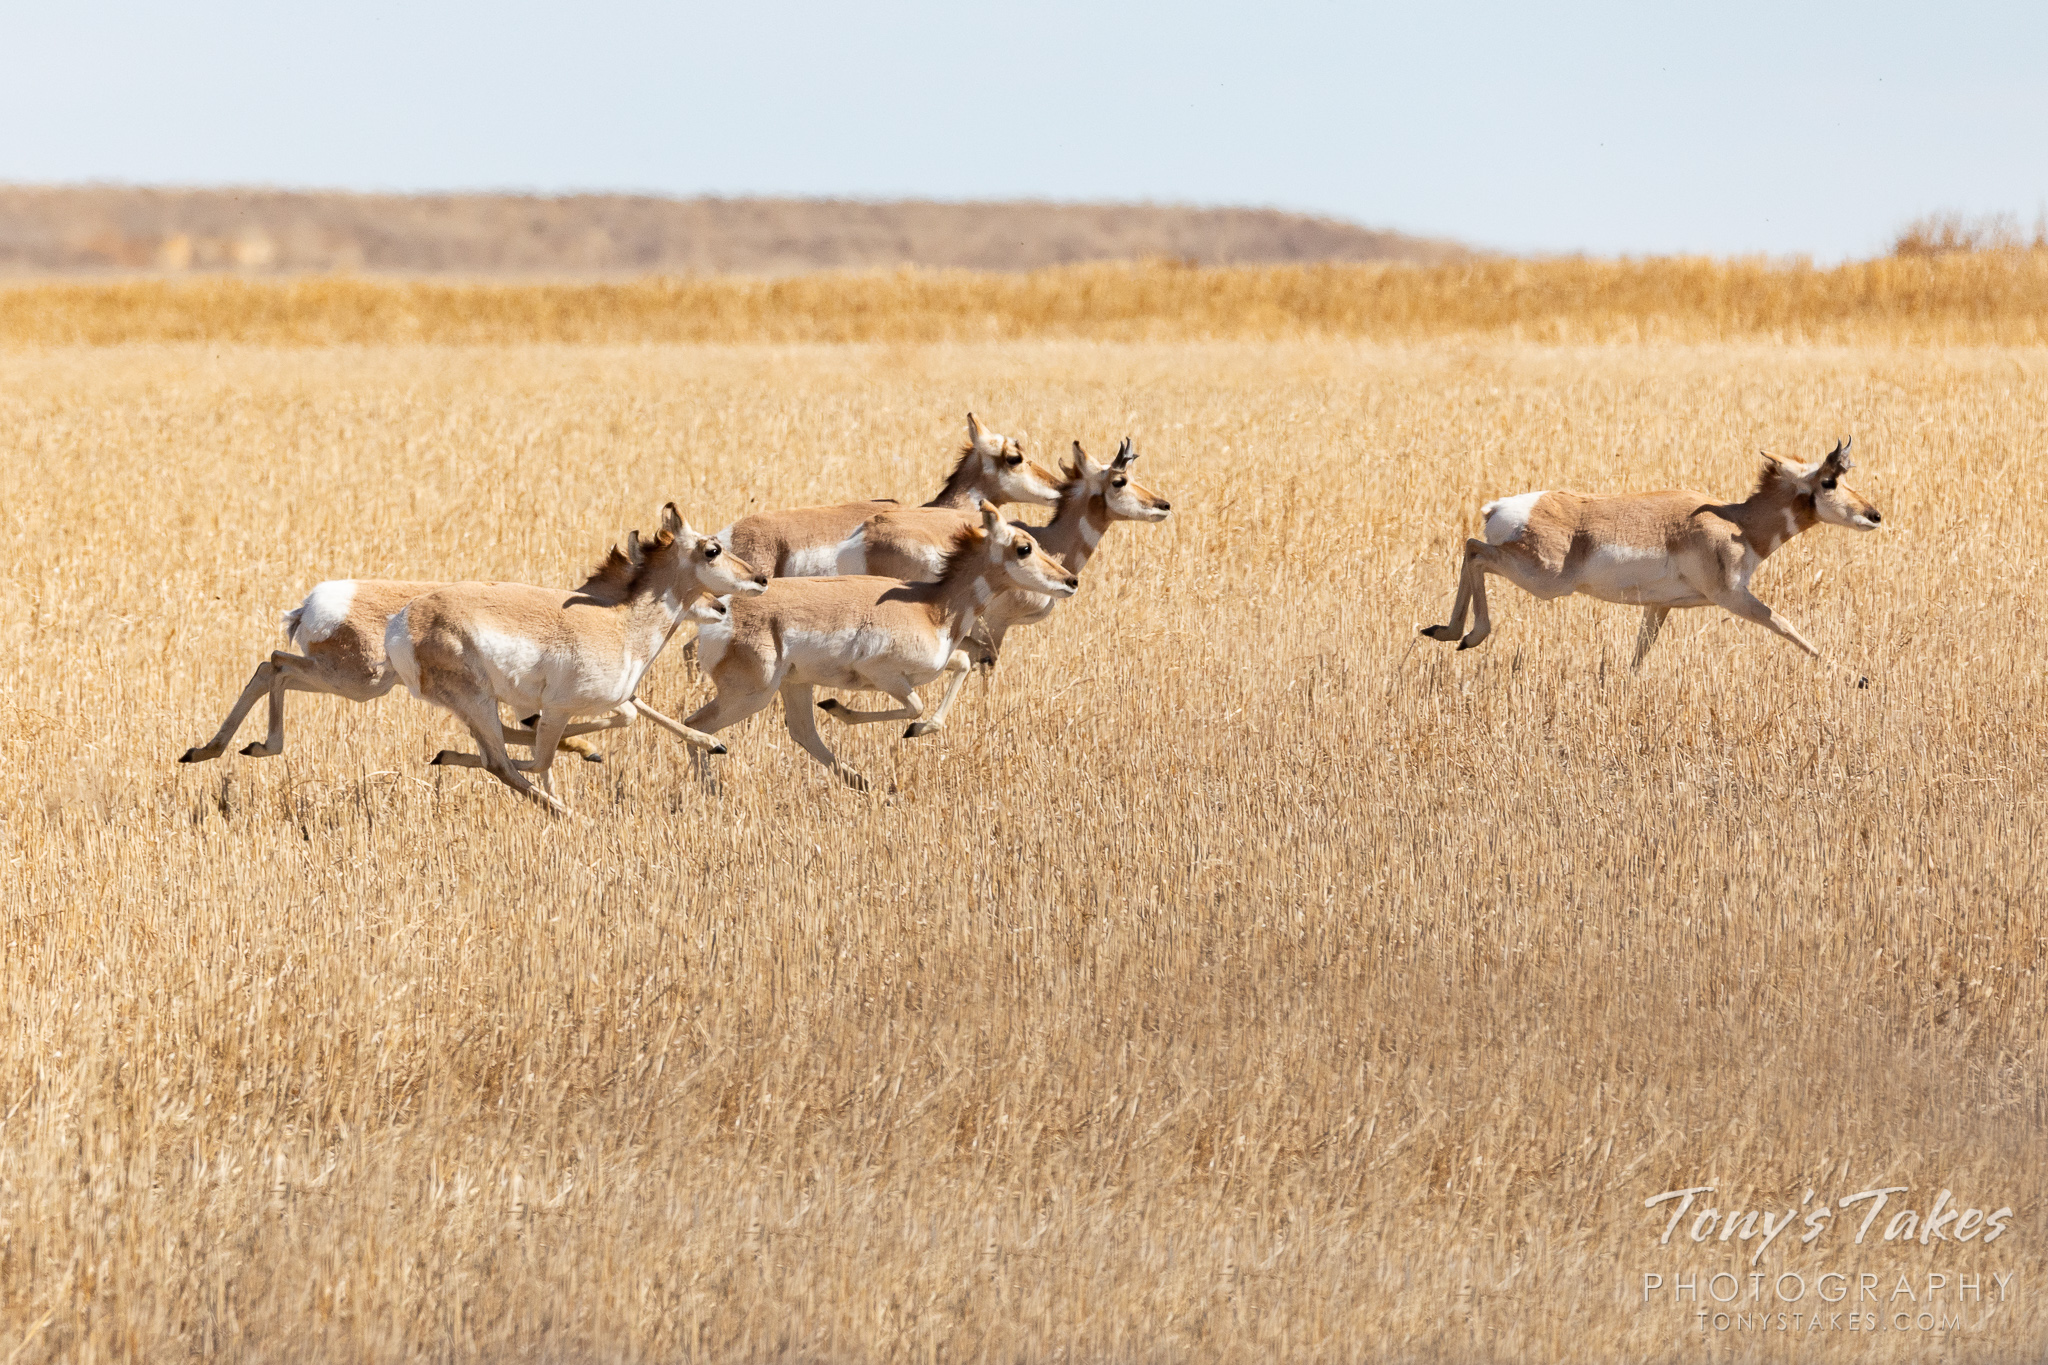 Pronghorn take off running across the eastern plains of Colorado. (© Tony's Takes)